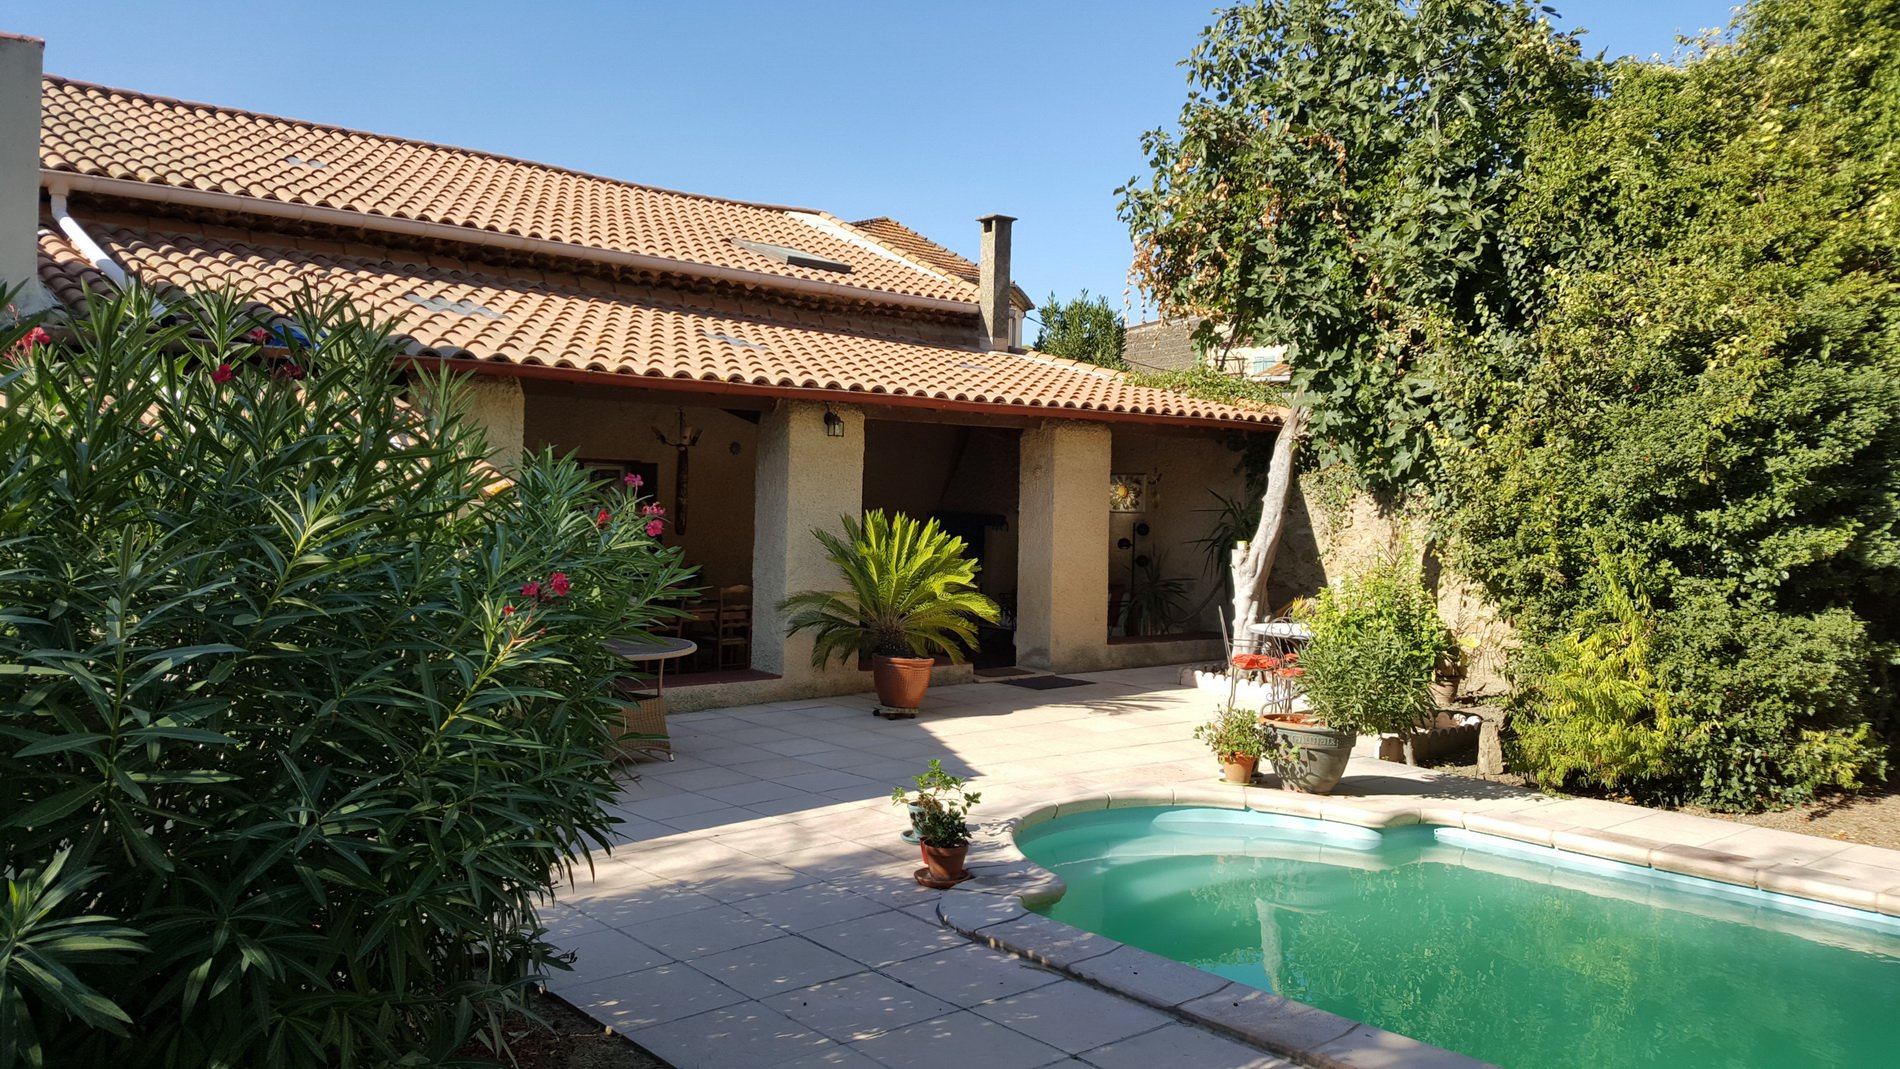 Lovely village house with garden and pool